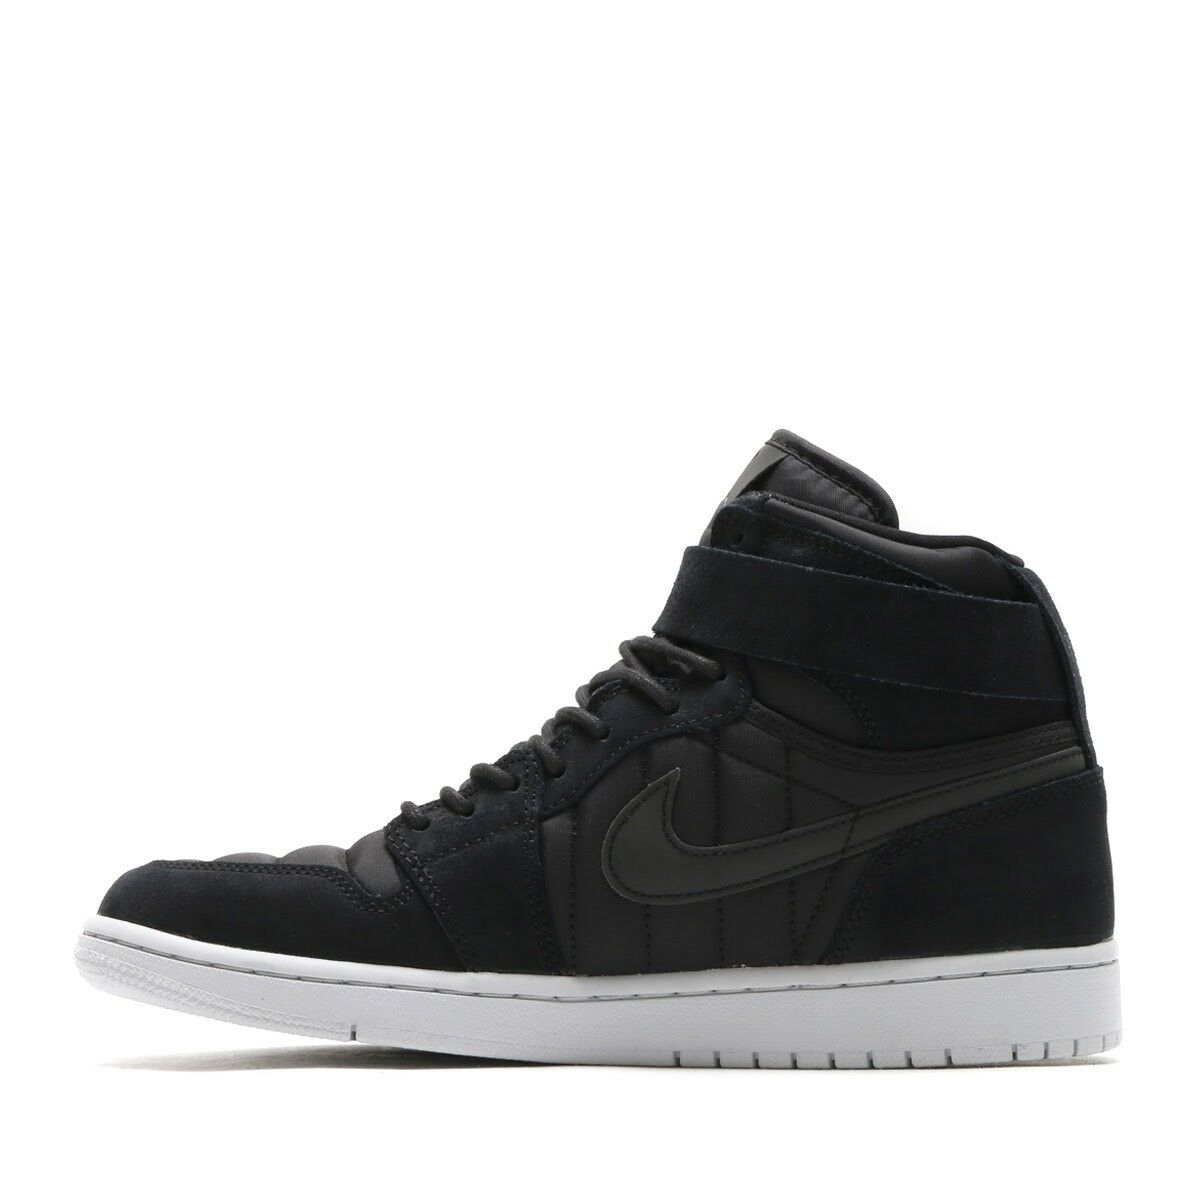 Nike Men Air Jordan 1 High Strap Sneakers Black 342132-004 US7-11 04'